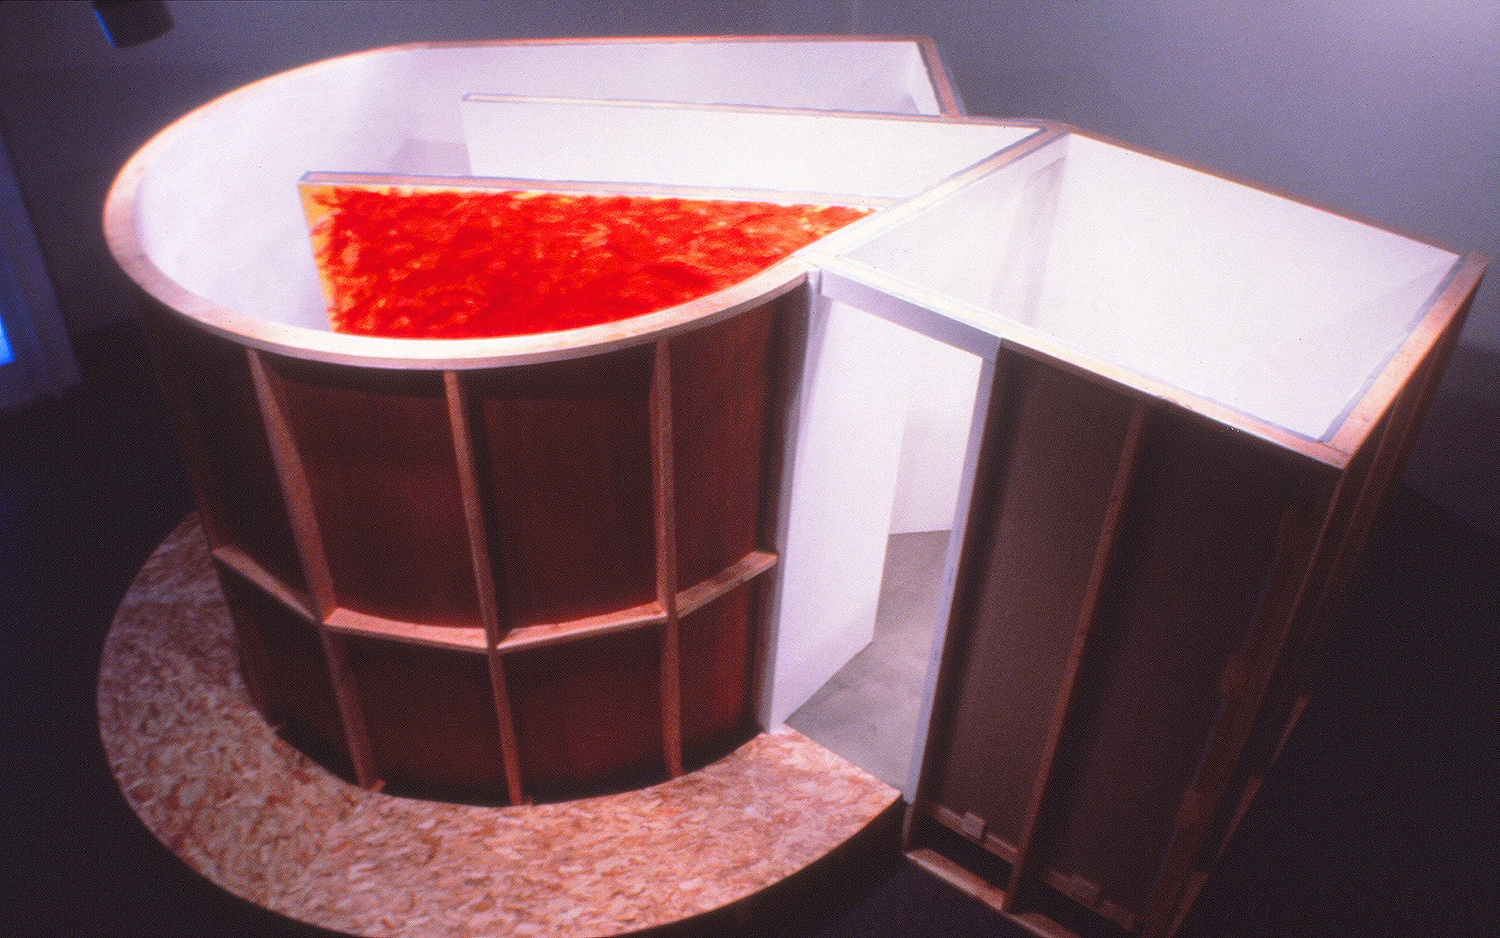 Aesthetic Truths: Illusion & Reality. 1996.  Wood/Sheetrock/Cement, 17'x14'x8'. Gallery W, Sacramento, CA